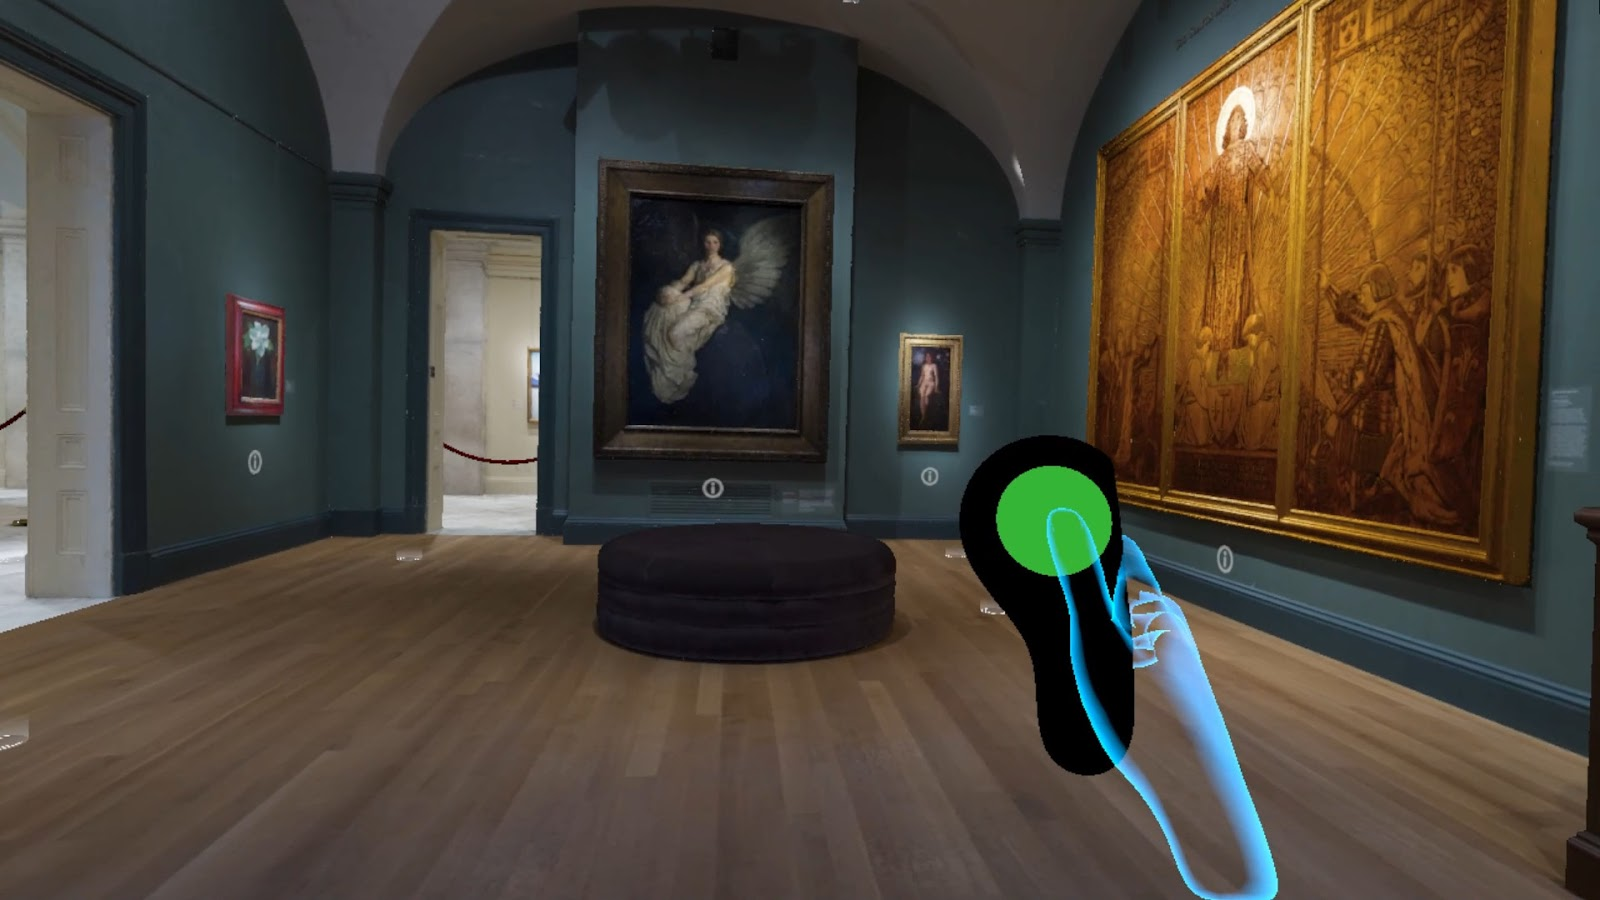 An art museum gallery with a rendering of a hand holding a remote control overlaid